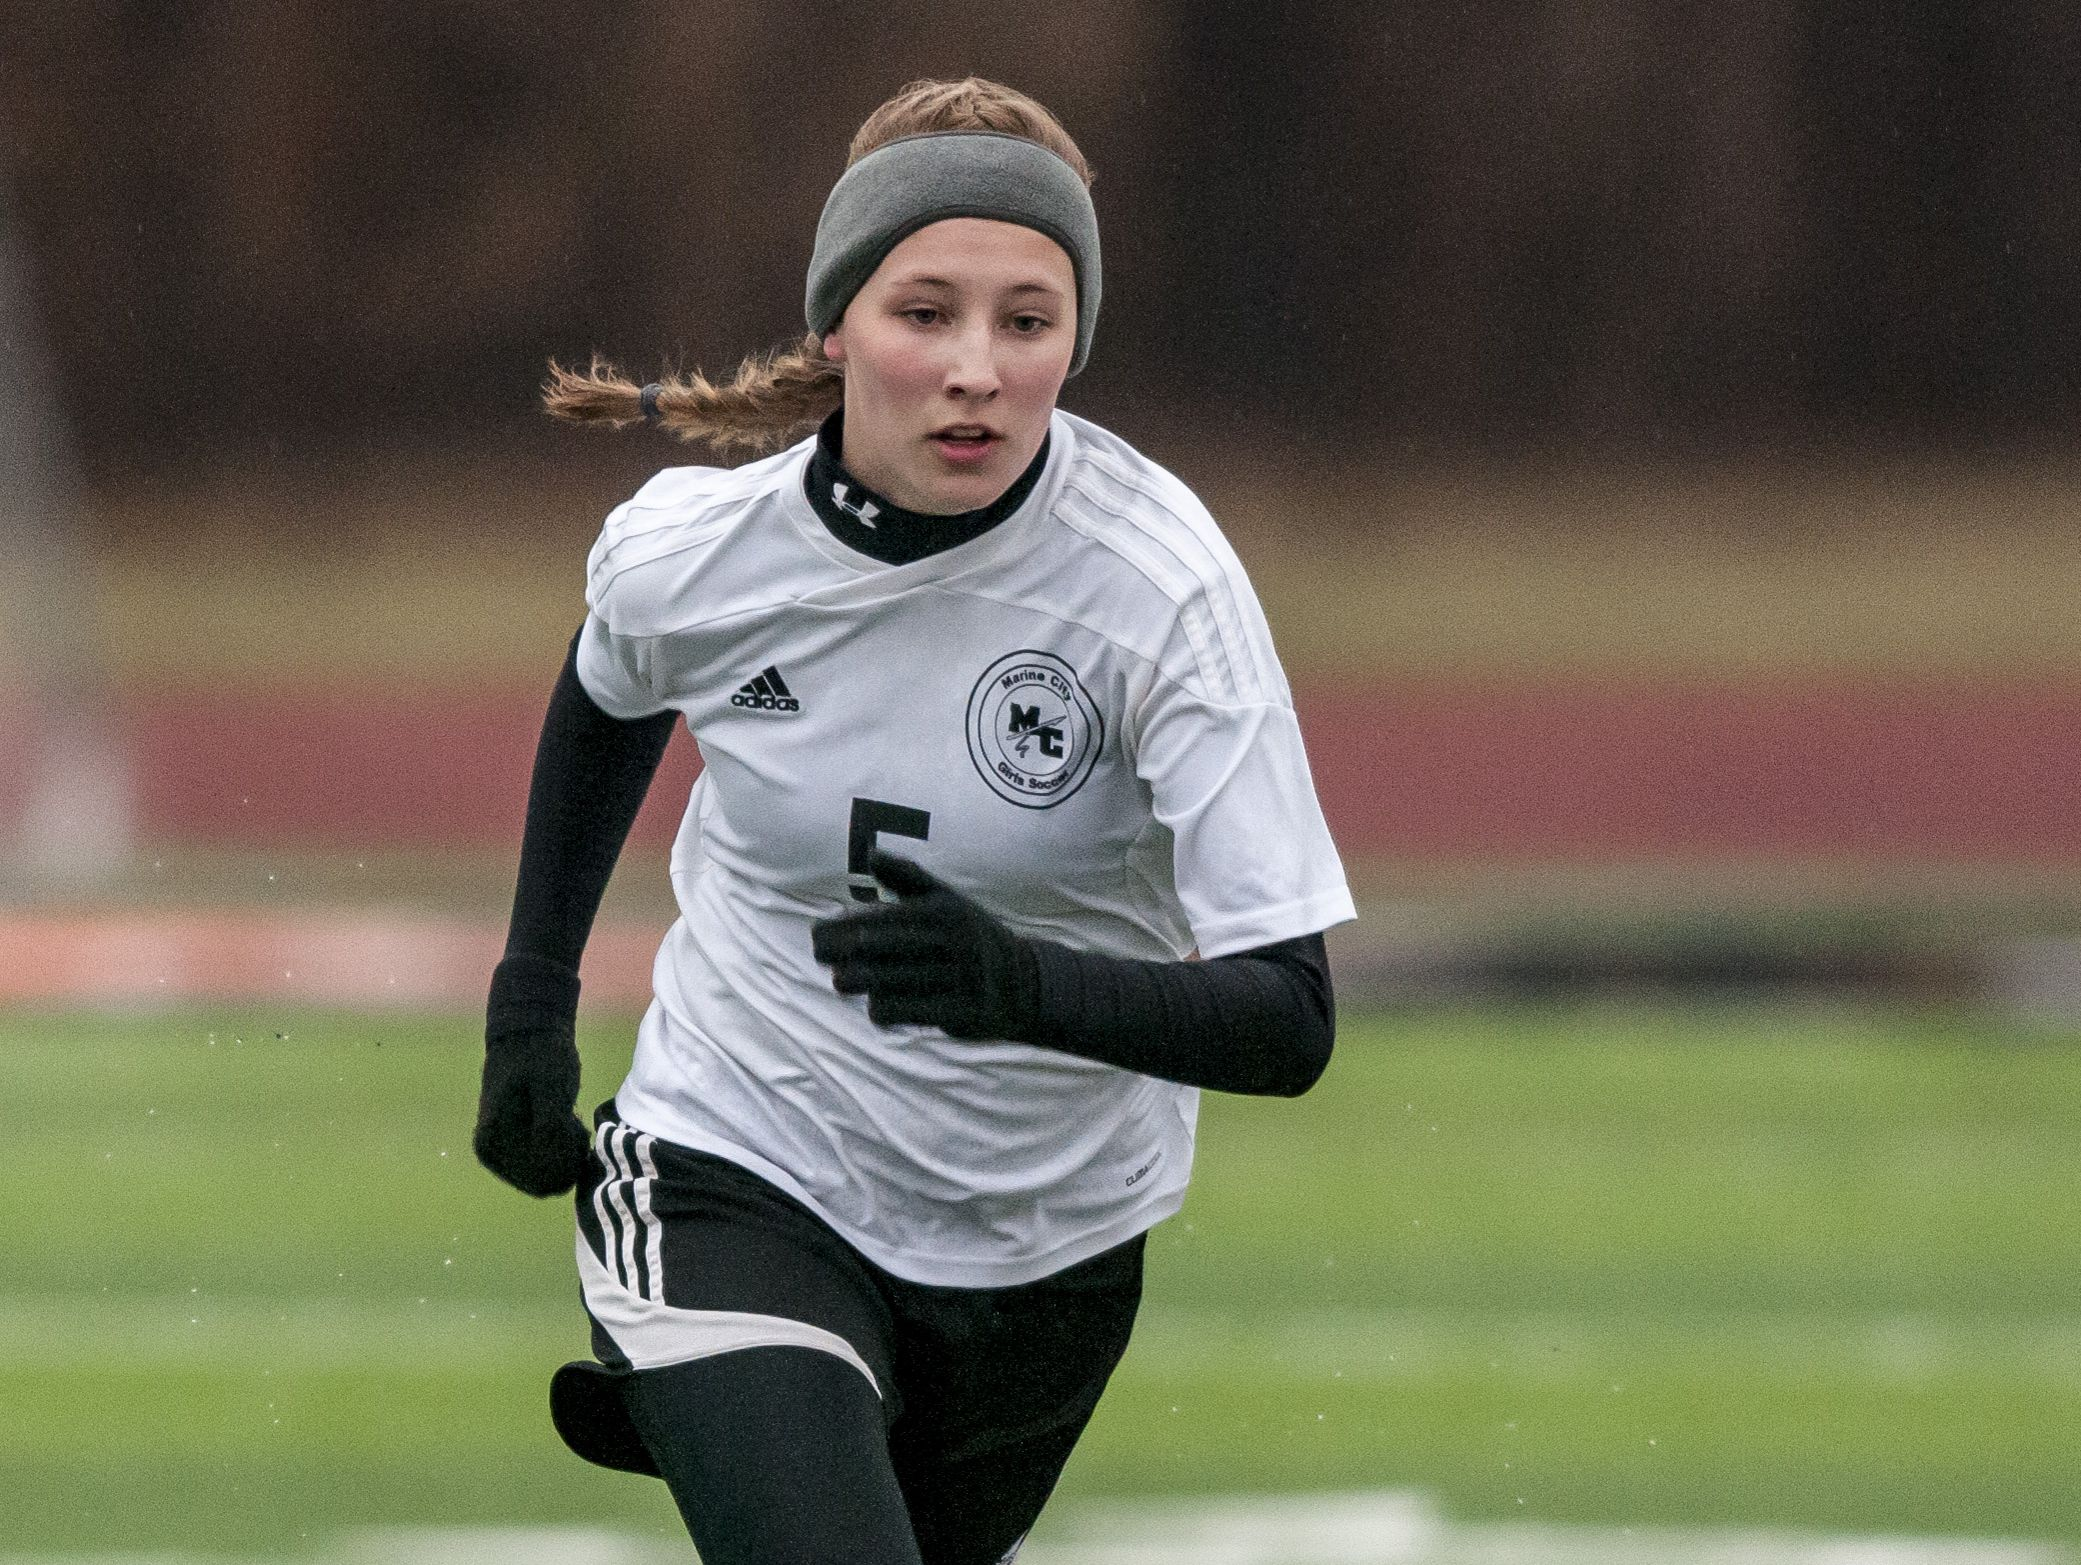 Marine City junior Emilie Andrews attacks the ball during a soccer game Wednesday, March 23, 2016 at East China Stadium.